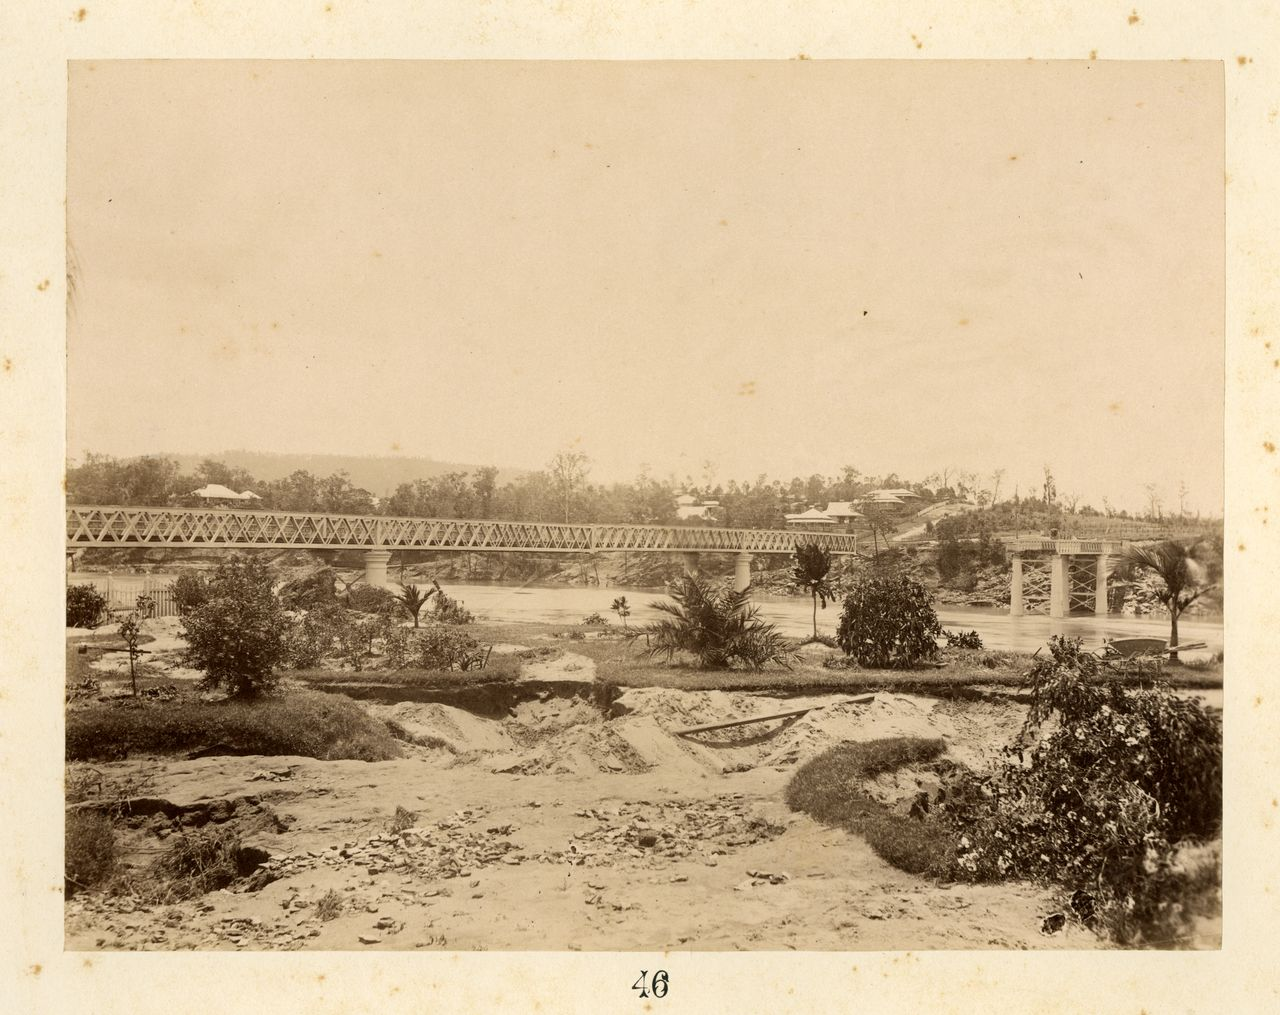 Image of flooded Brisbane River and Indooroopilly Railway Bridge with large section missing on the right hand side.